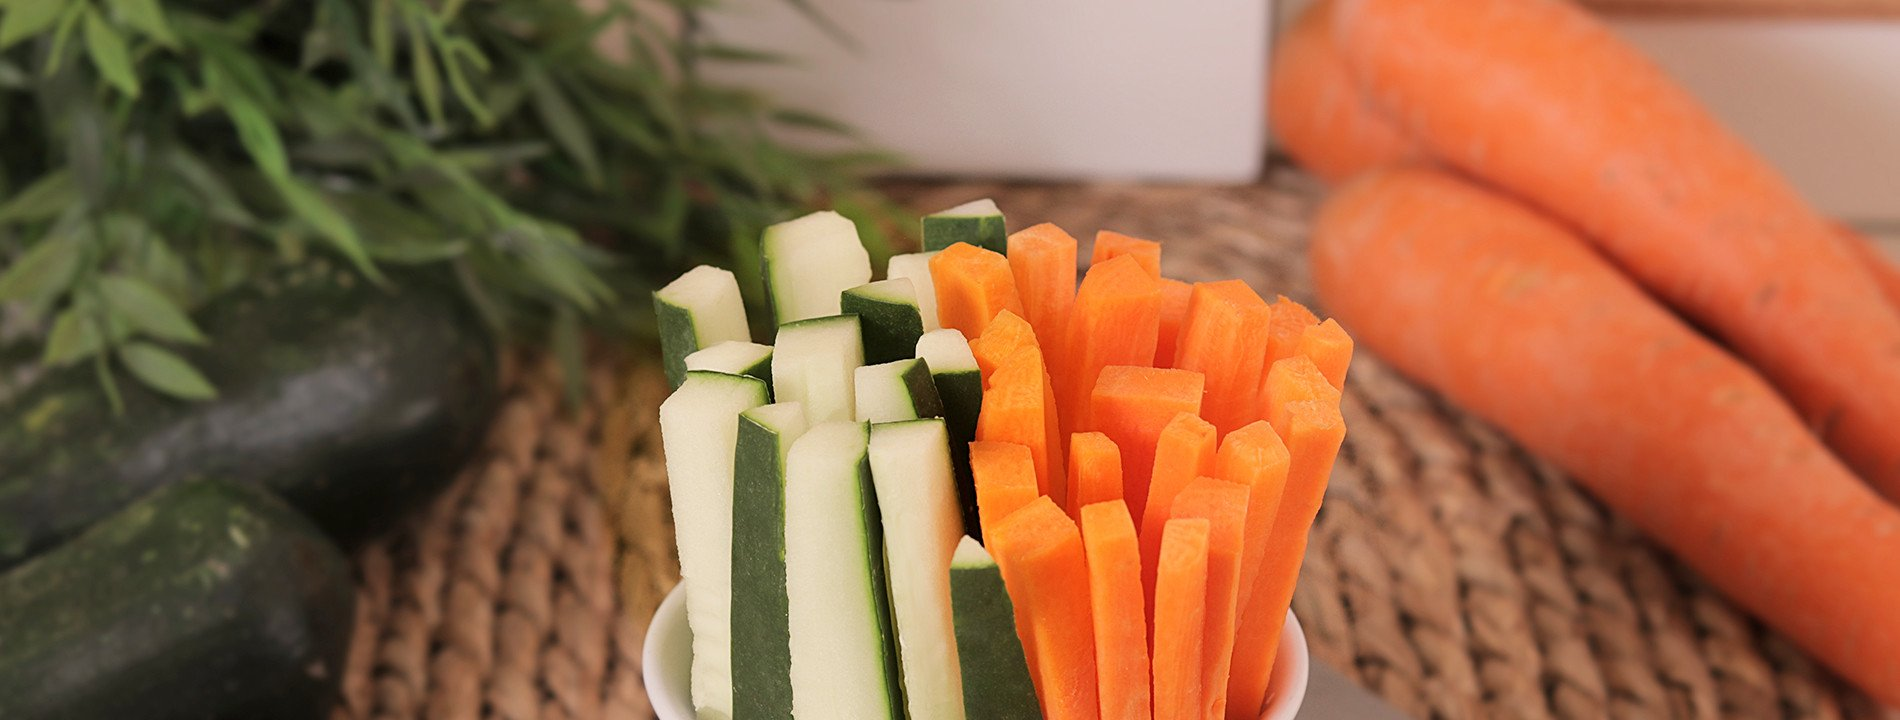 Mix Carrot Sticks and Zucchini